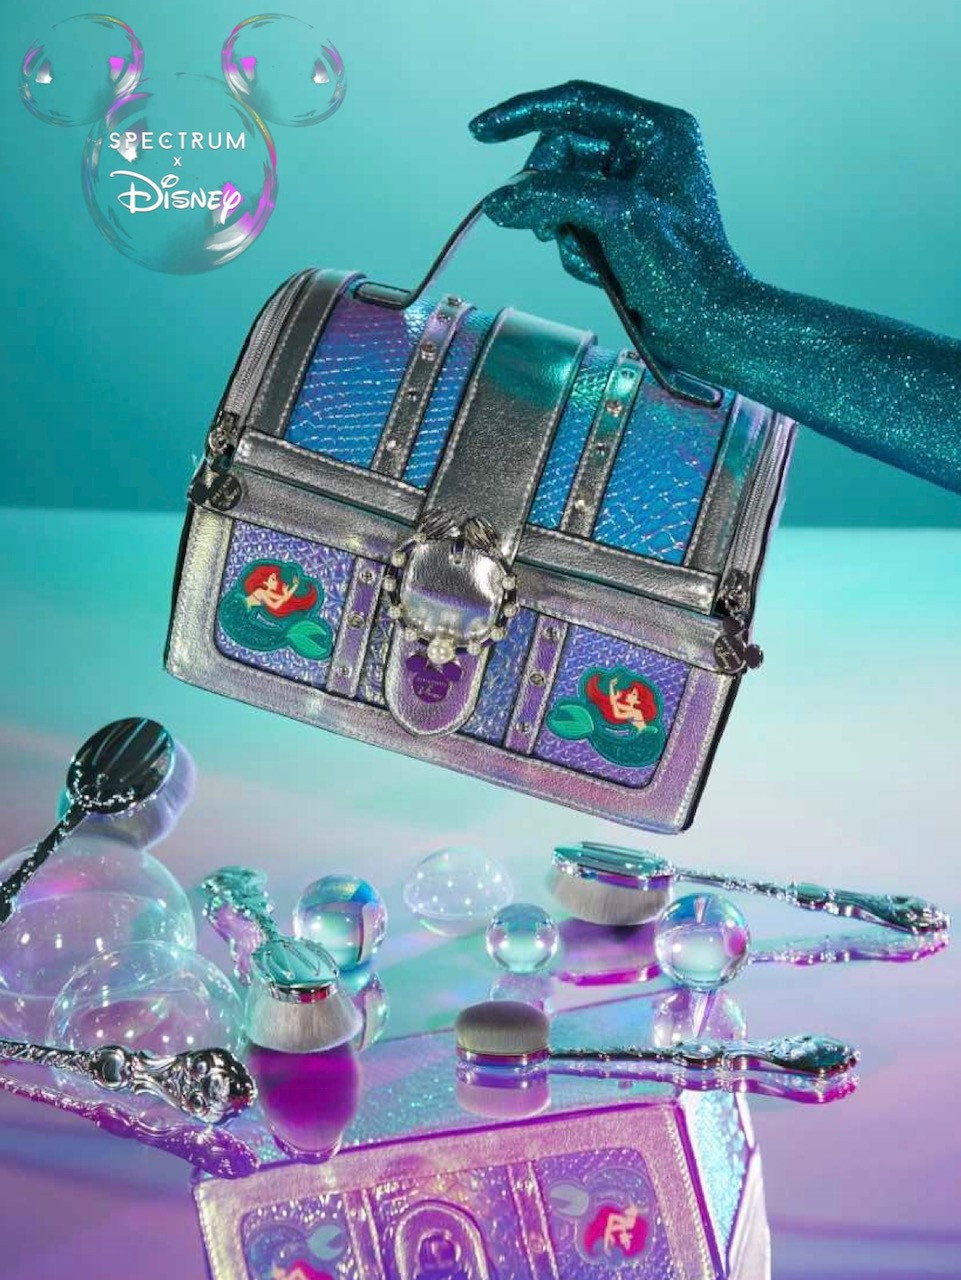 Spectrum Collections X Disney The Little Mermaid | UK Makeup News | FYI Beauty